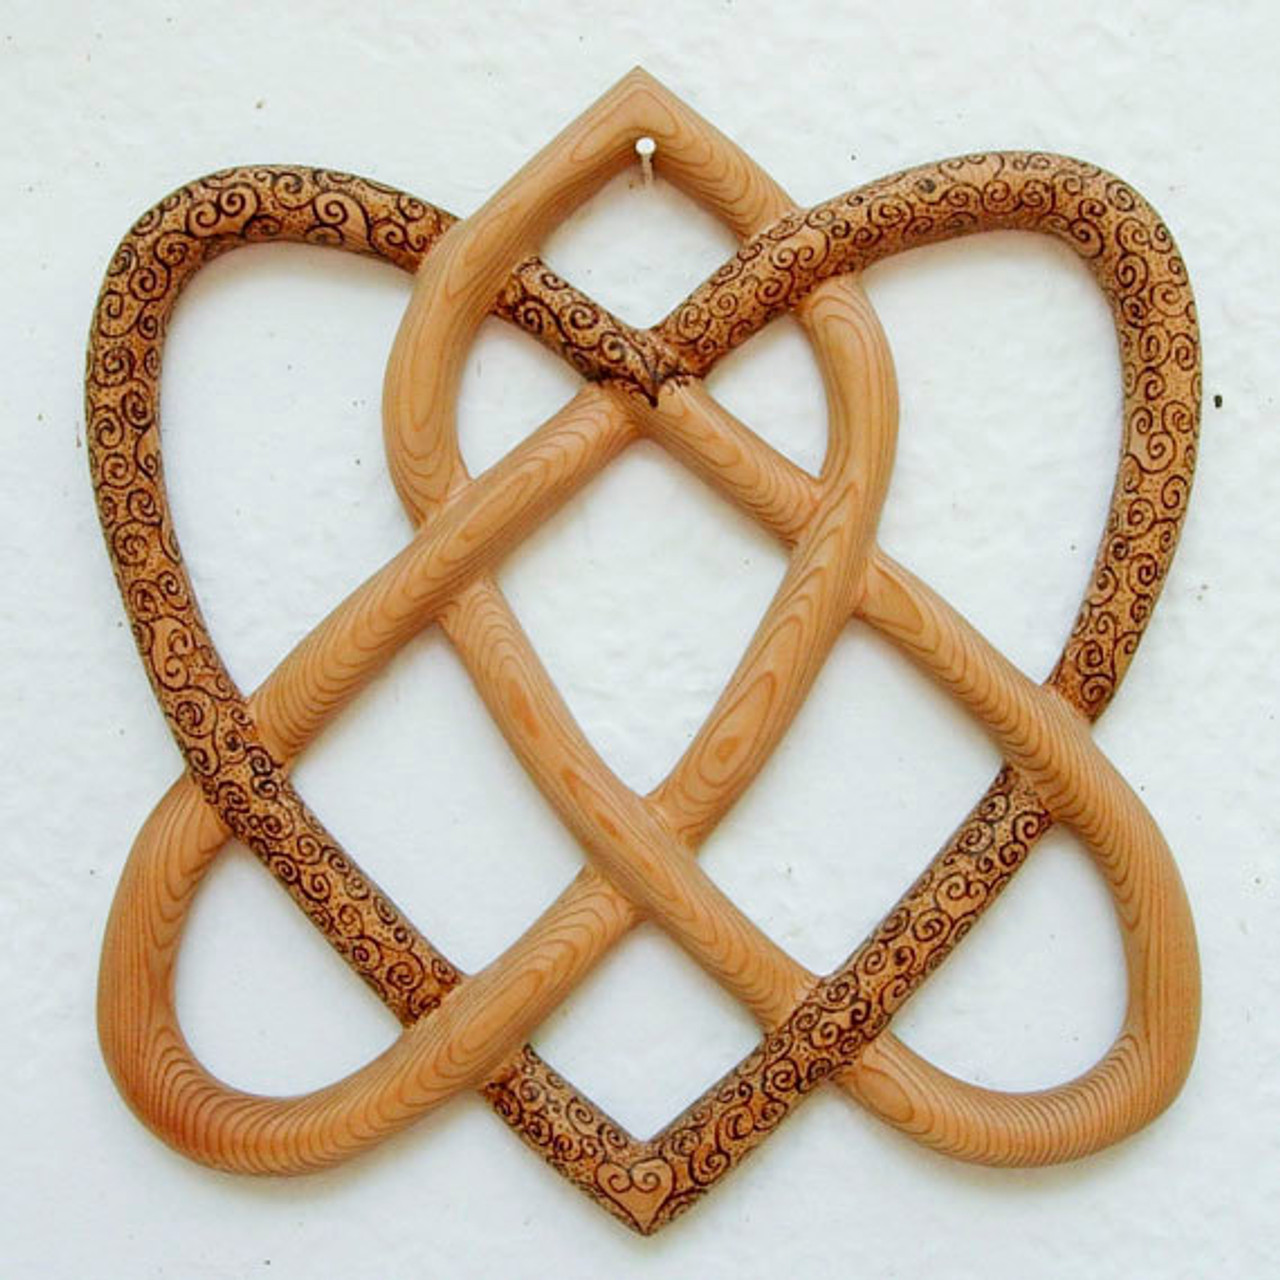 Wood Burned Irish Love Knot Traditional Celtic Knot Two Hearts